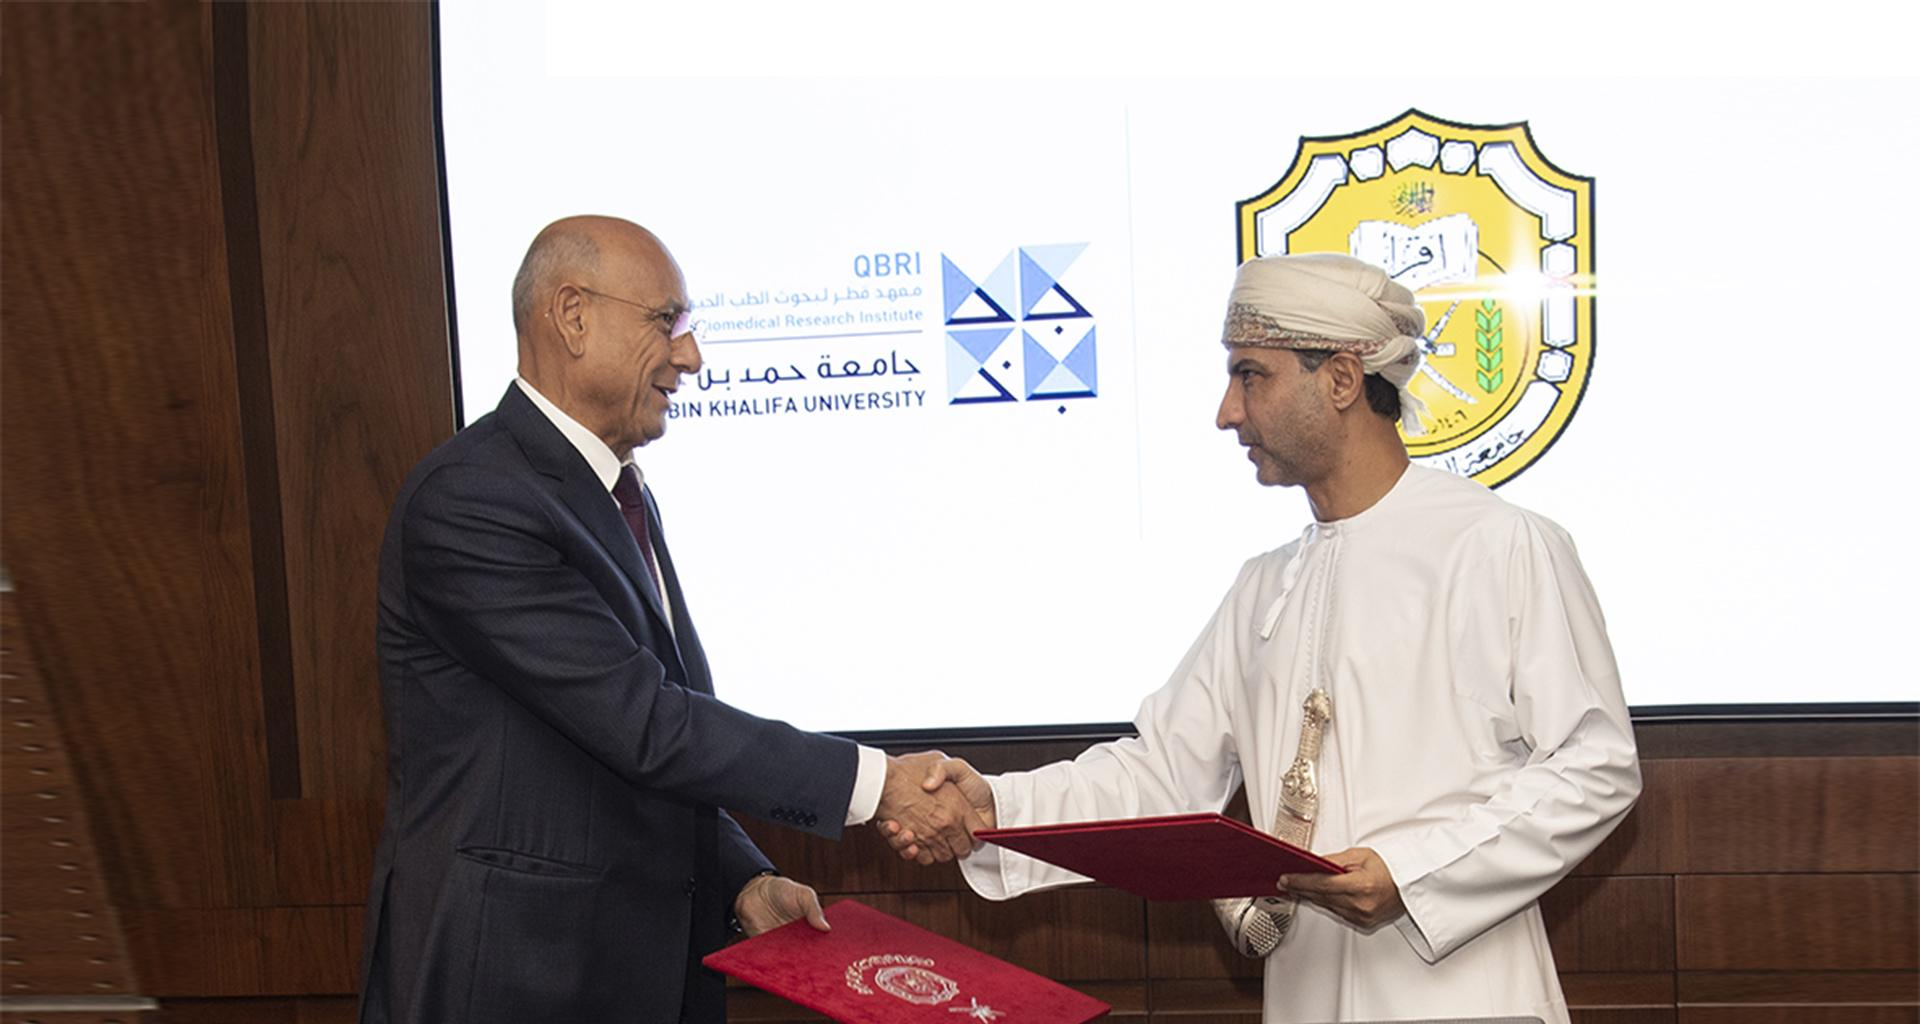 Qatar Biomedical Research Institute to Cooperate with Sultan Qaboos University on Autism Research